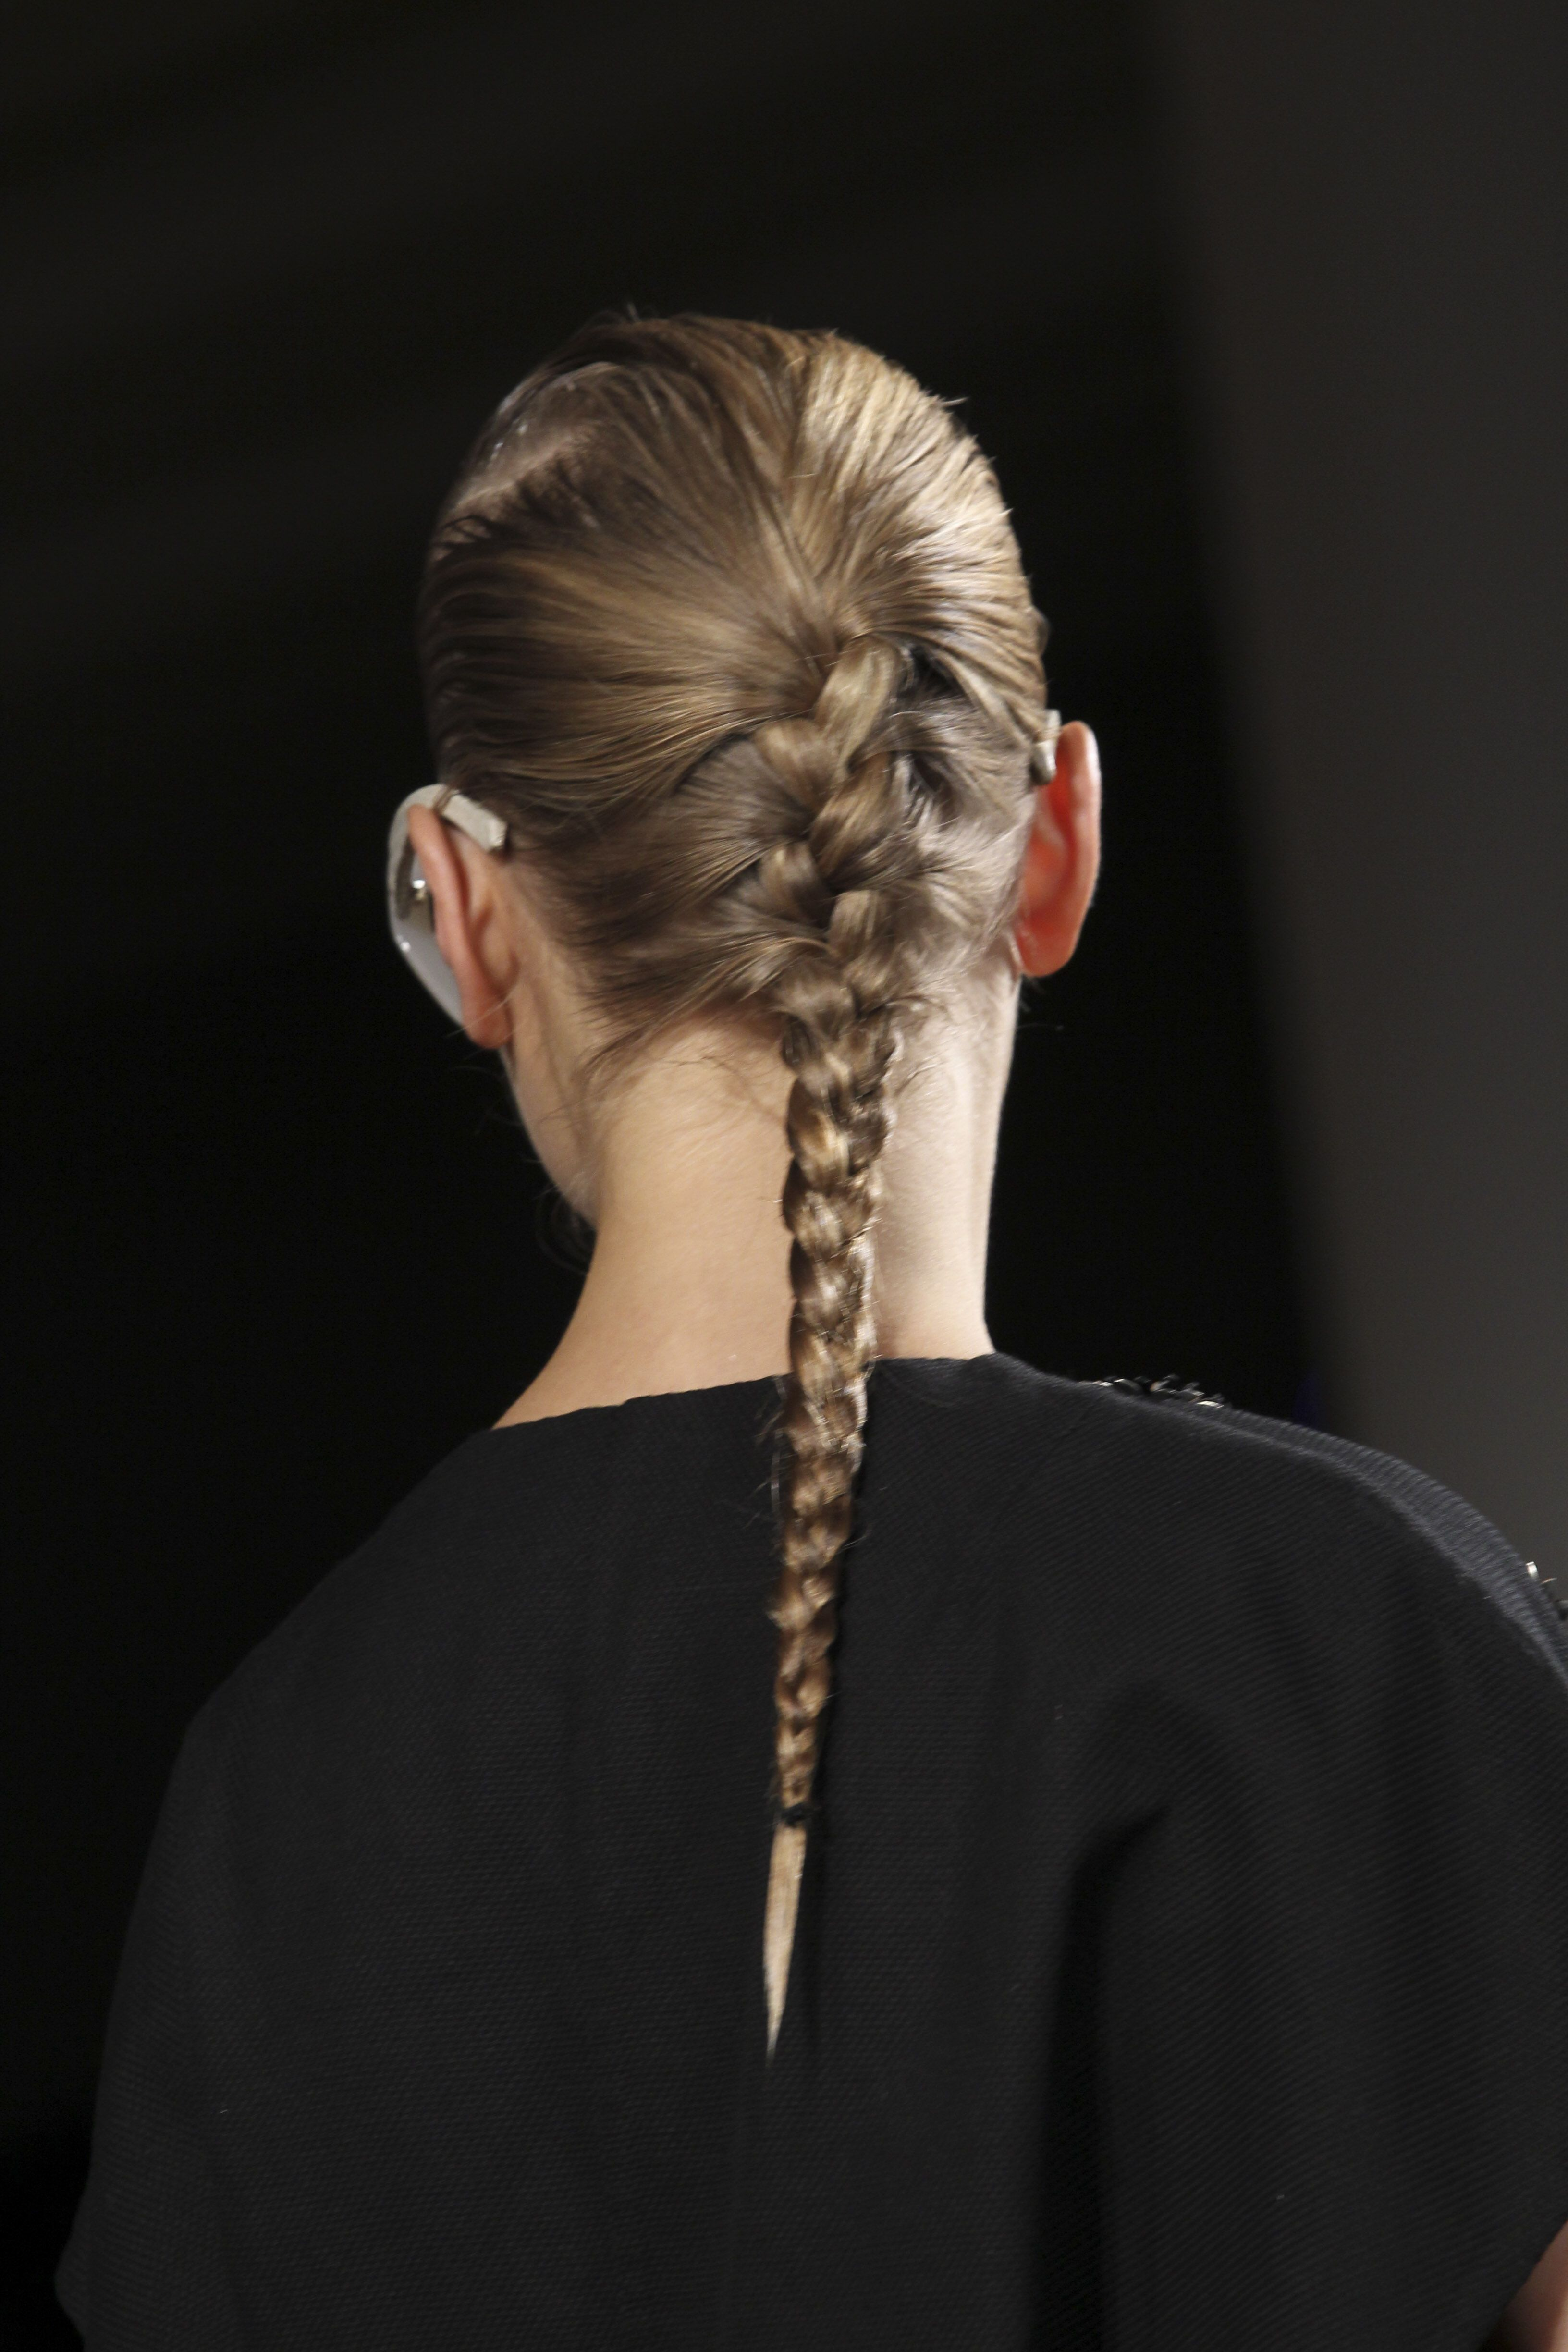 Want a runway-ready braid? The trick is to use mousse for control and satiny shine #SS15 @PeterSom #hair